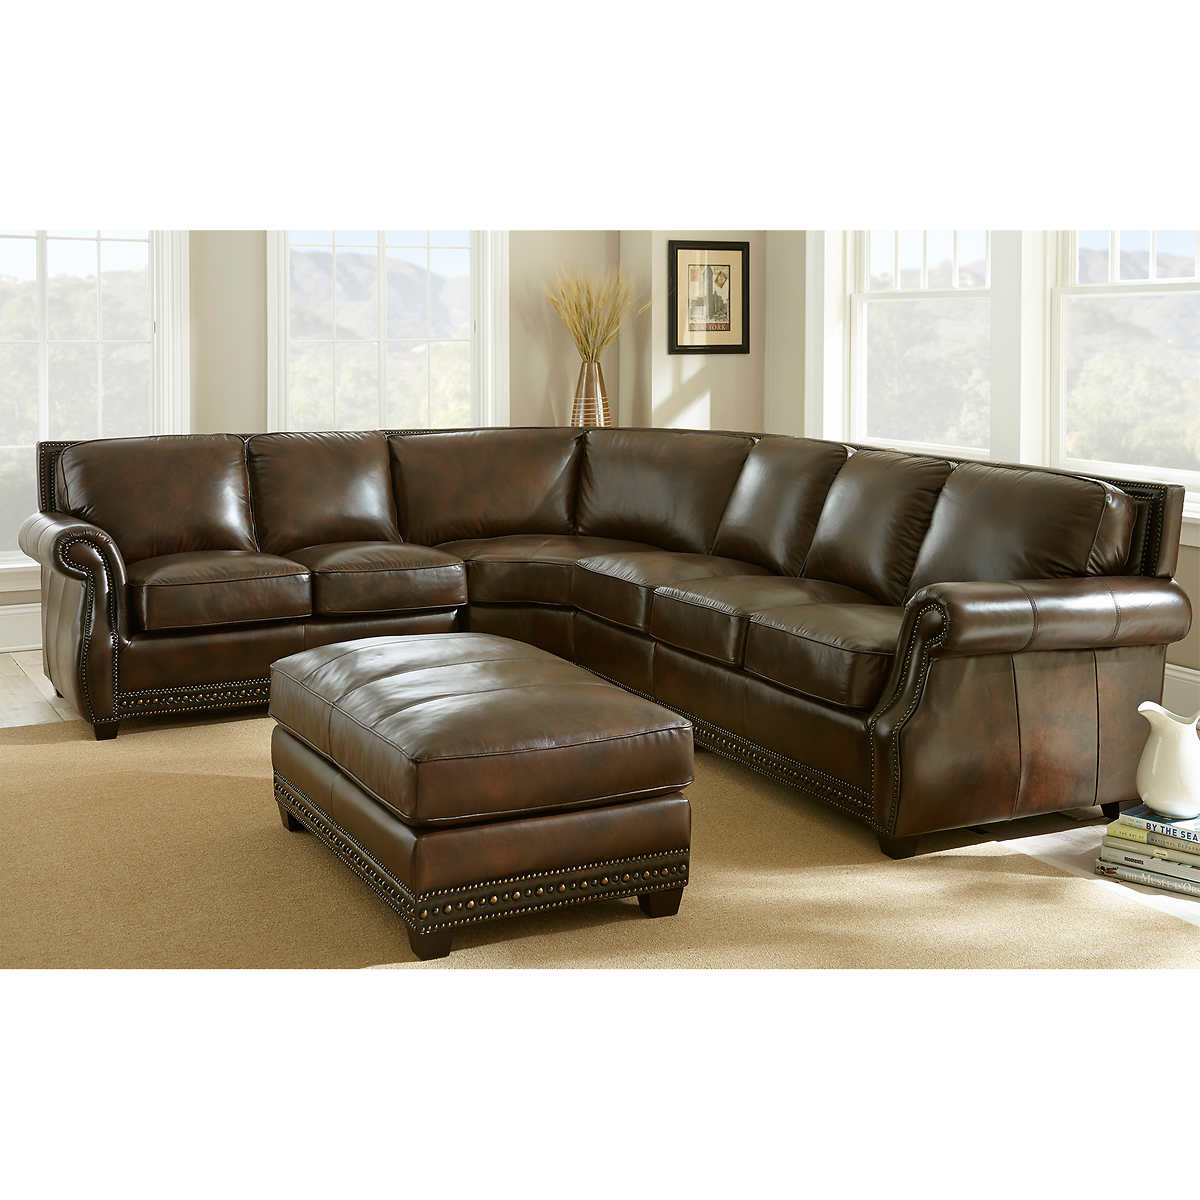 Leather Sofas   Sectionals   Costco Hampton Court Top Grain Leather Sectional and Ottoman. Costco Living Room. Home Design Ideas